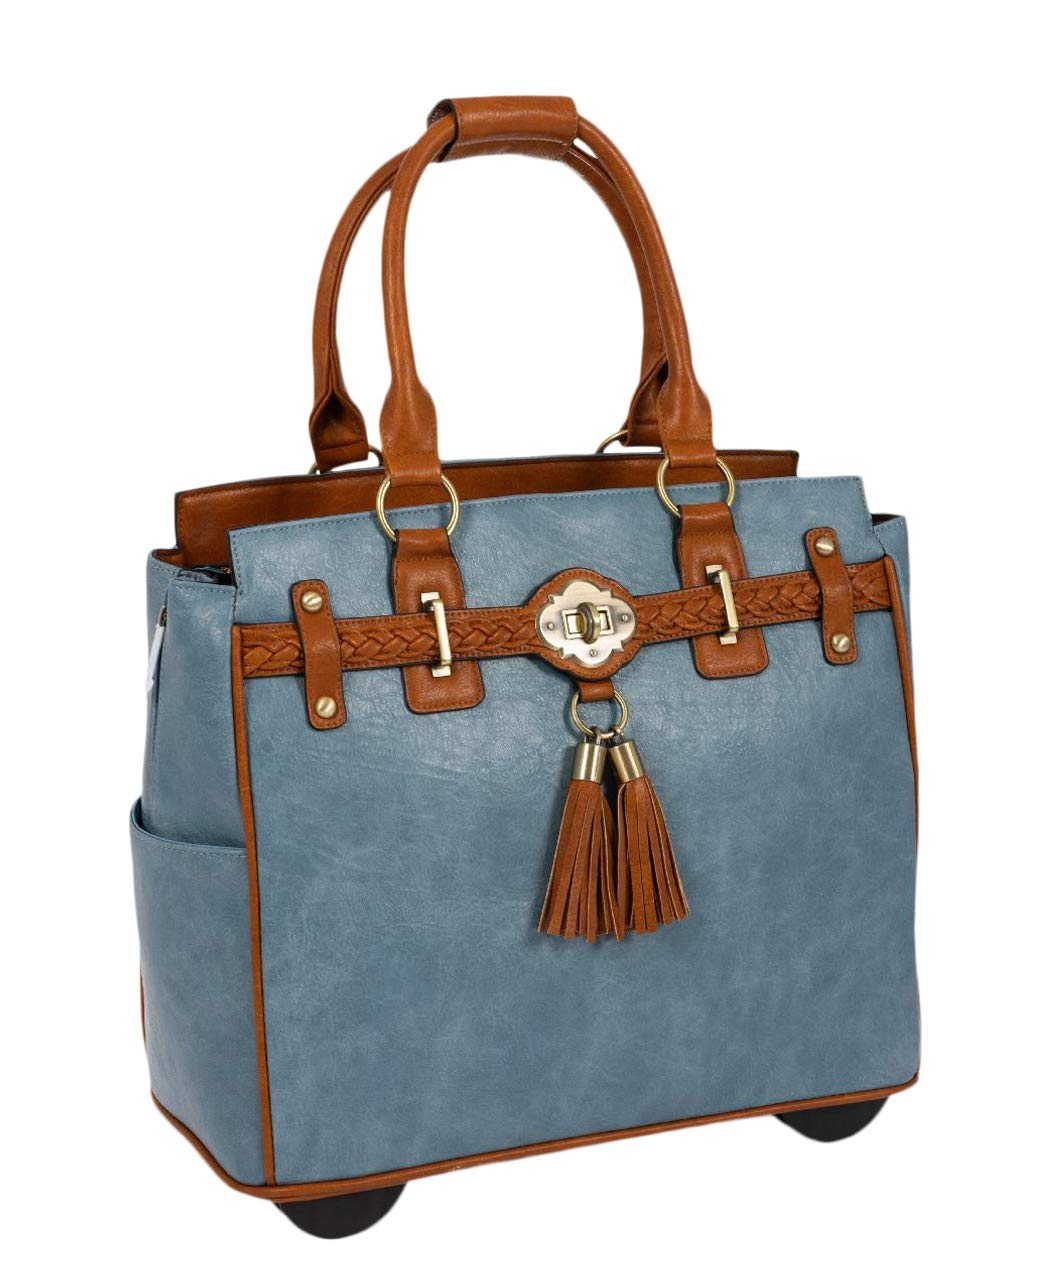 12 Best Fashionable & Affordable Laptop Bags 11